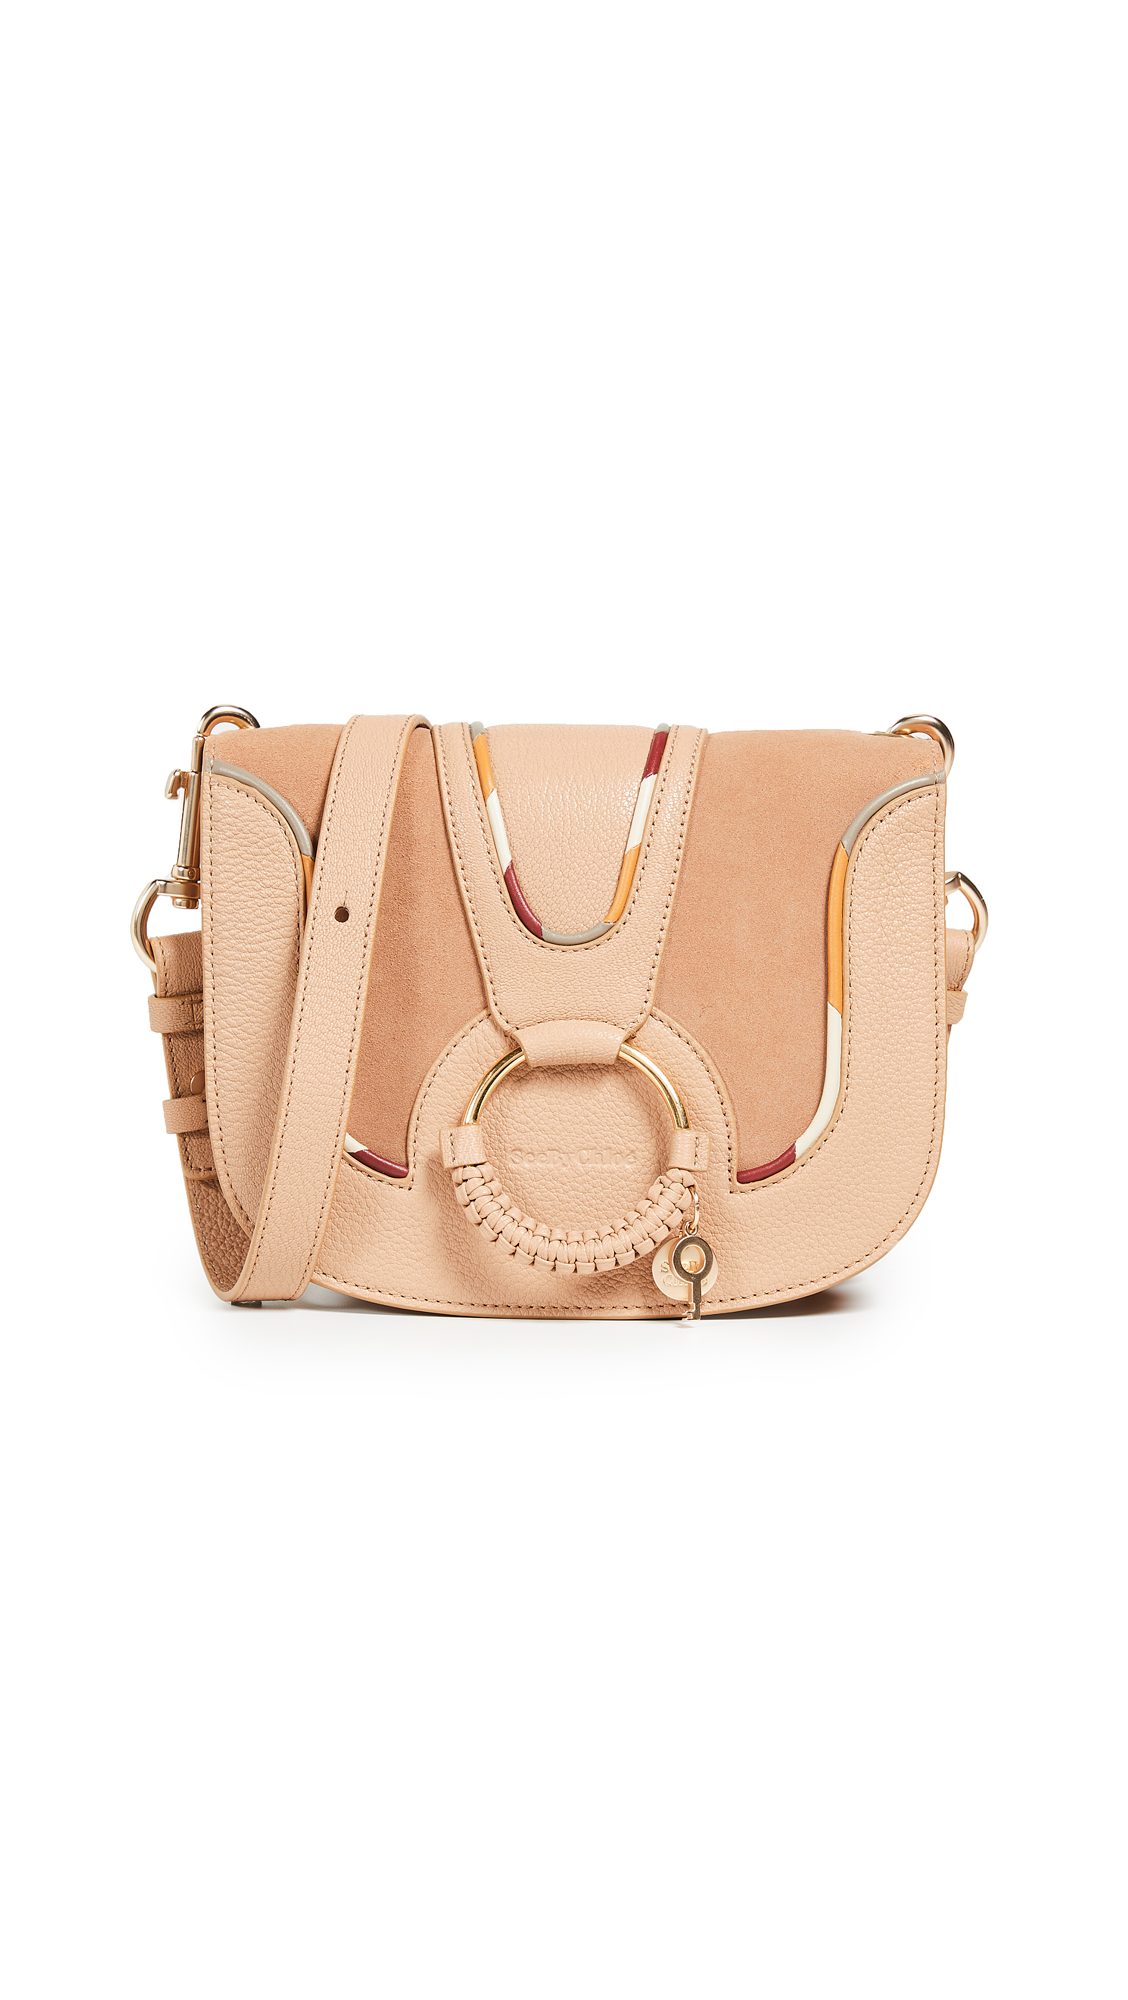 See by Chloe Hana Medium Saddle Bag In Blush Nude